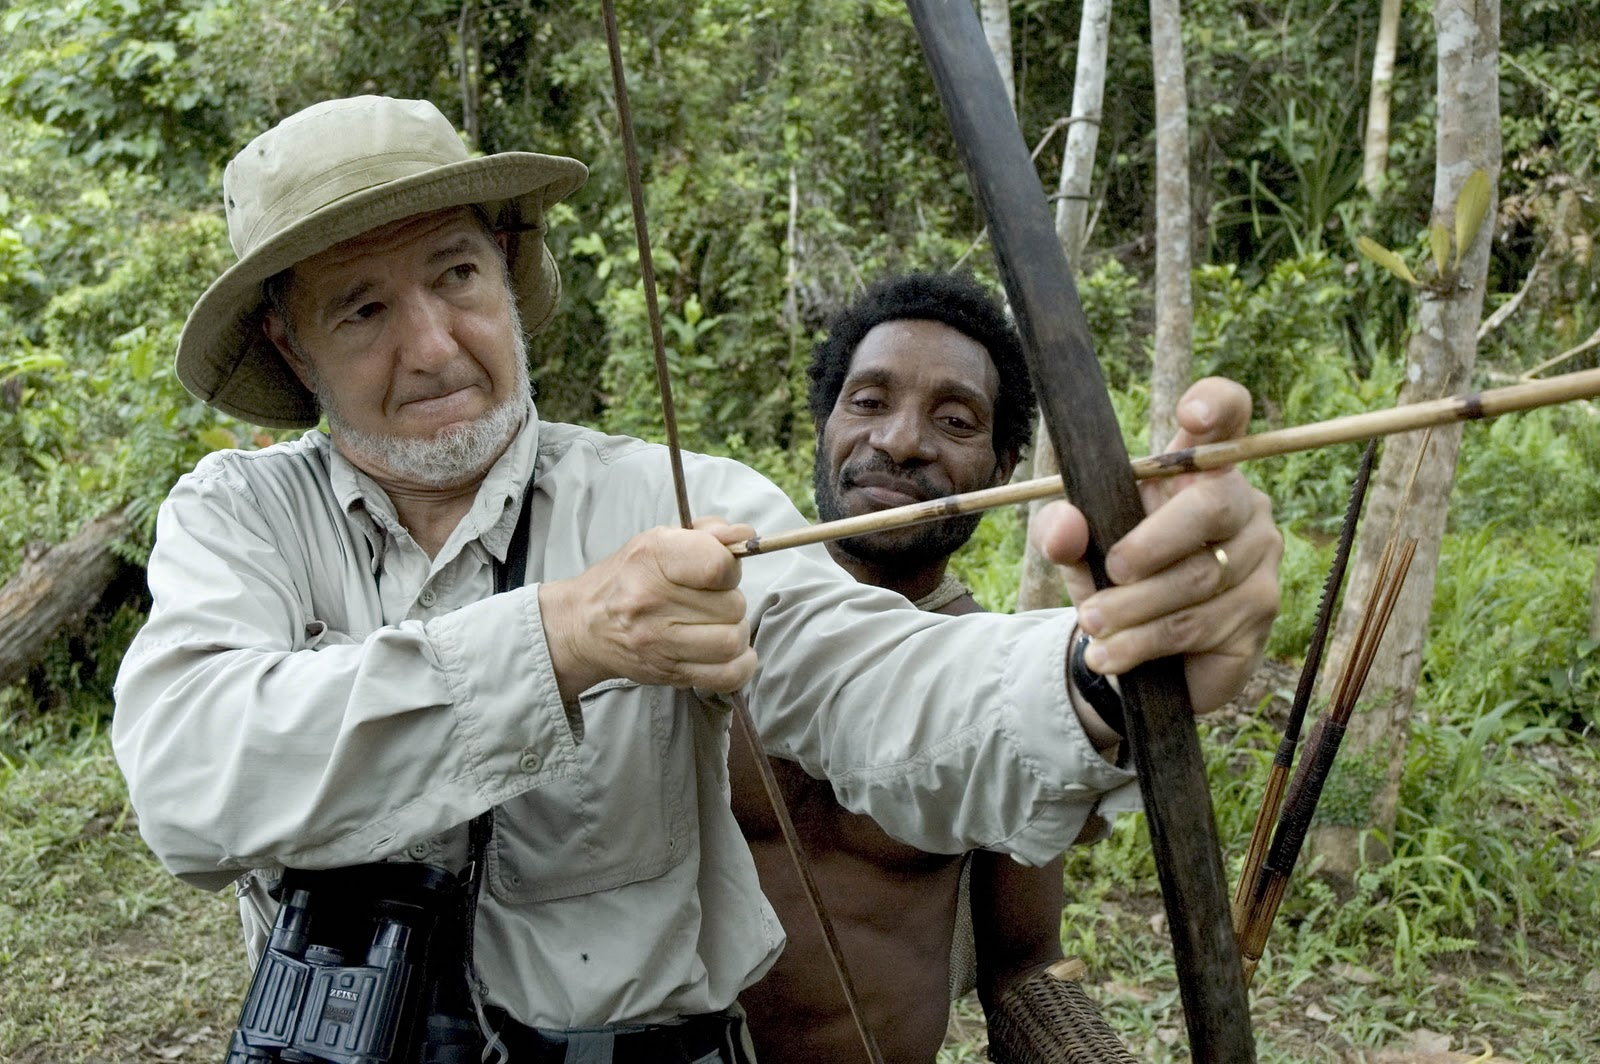 an analysis of gunsgerms and steel by jared diamond Media review guns, germs, and steel - chapter 3: collision at the new world and pointed to jared diamond as diamond's argument in guns, germs, and steel doesn.